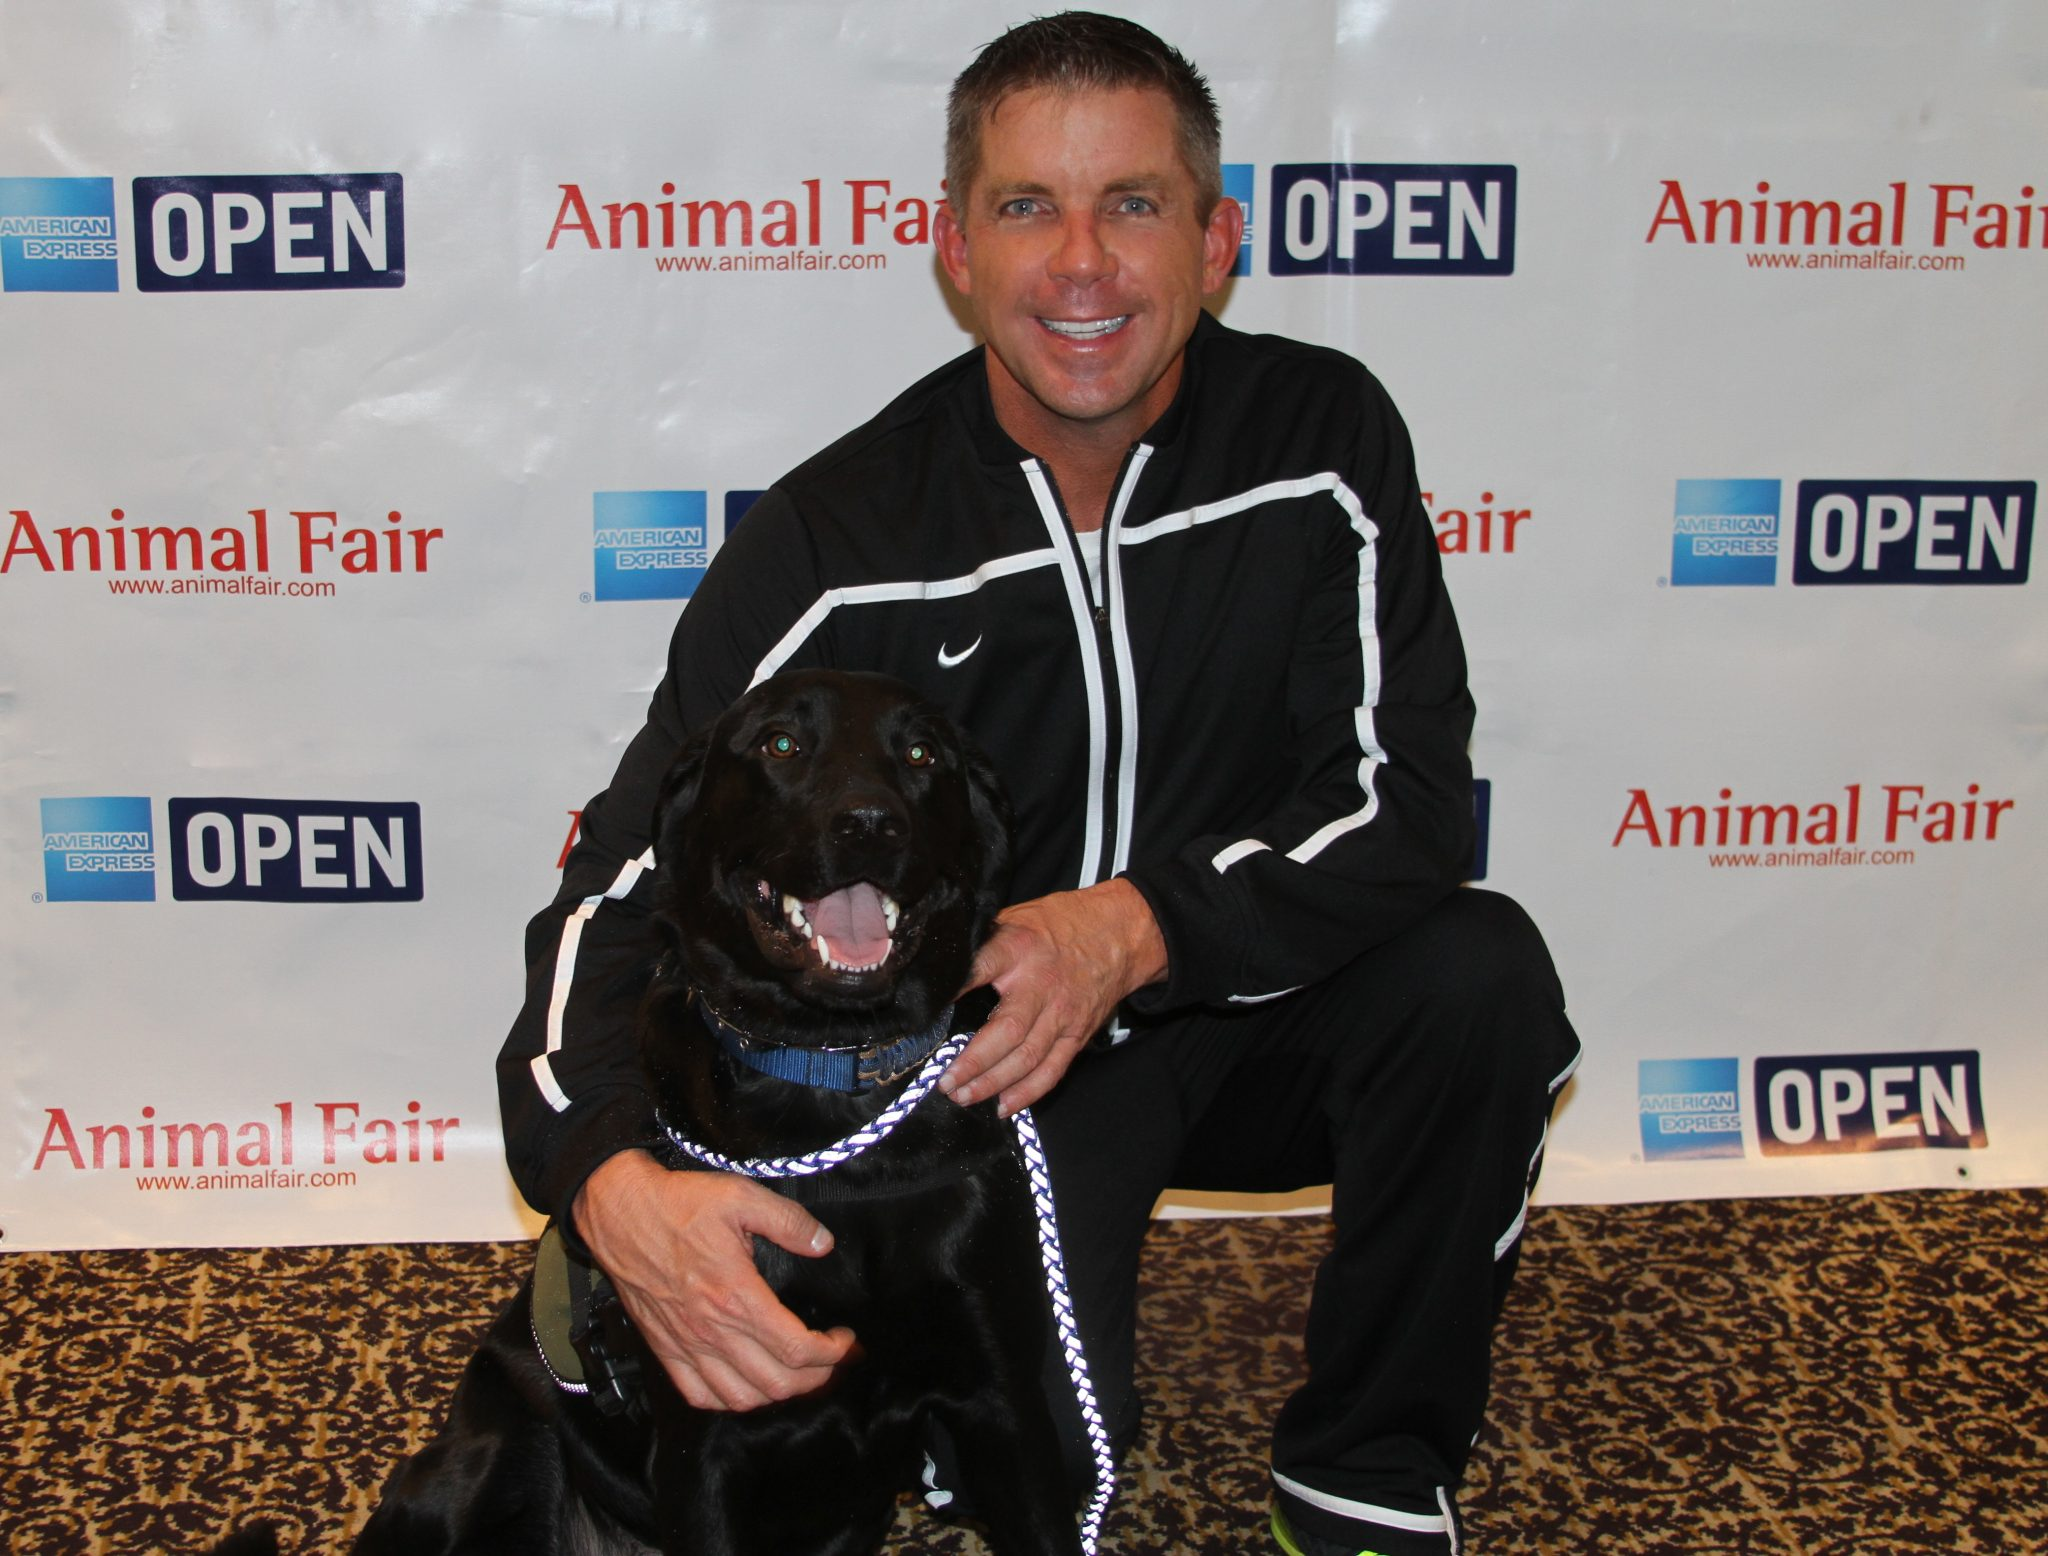 In Honor Of The Superbowl! Thank you @SeanPayton – Big Easy Saints Coach Rolls Over To Support Veterans @K9sFor Warriors!